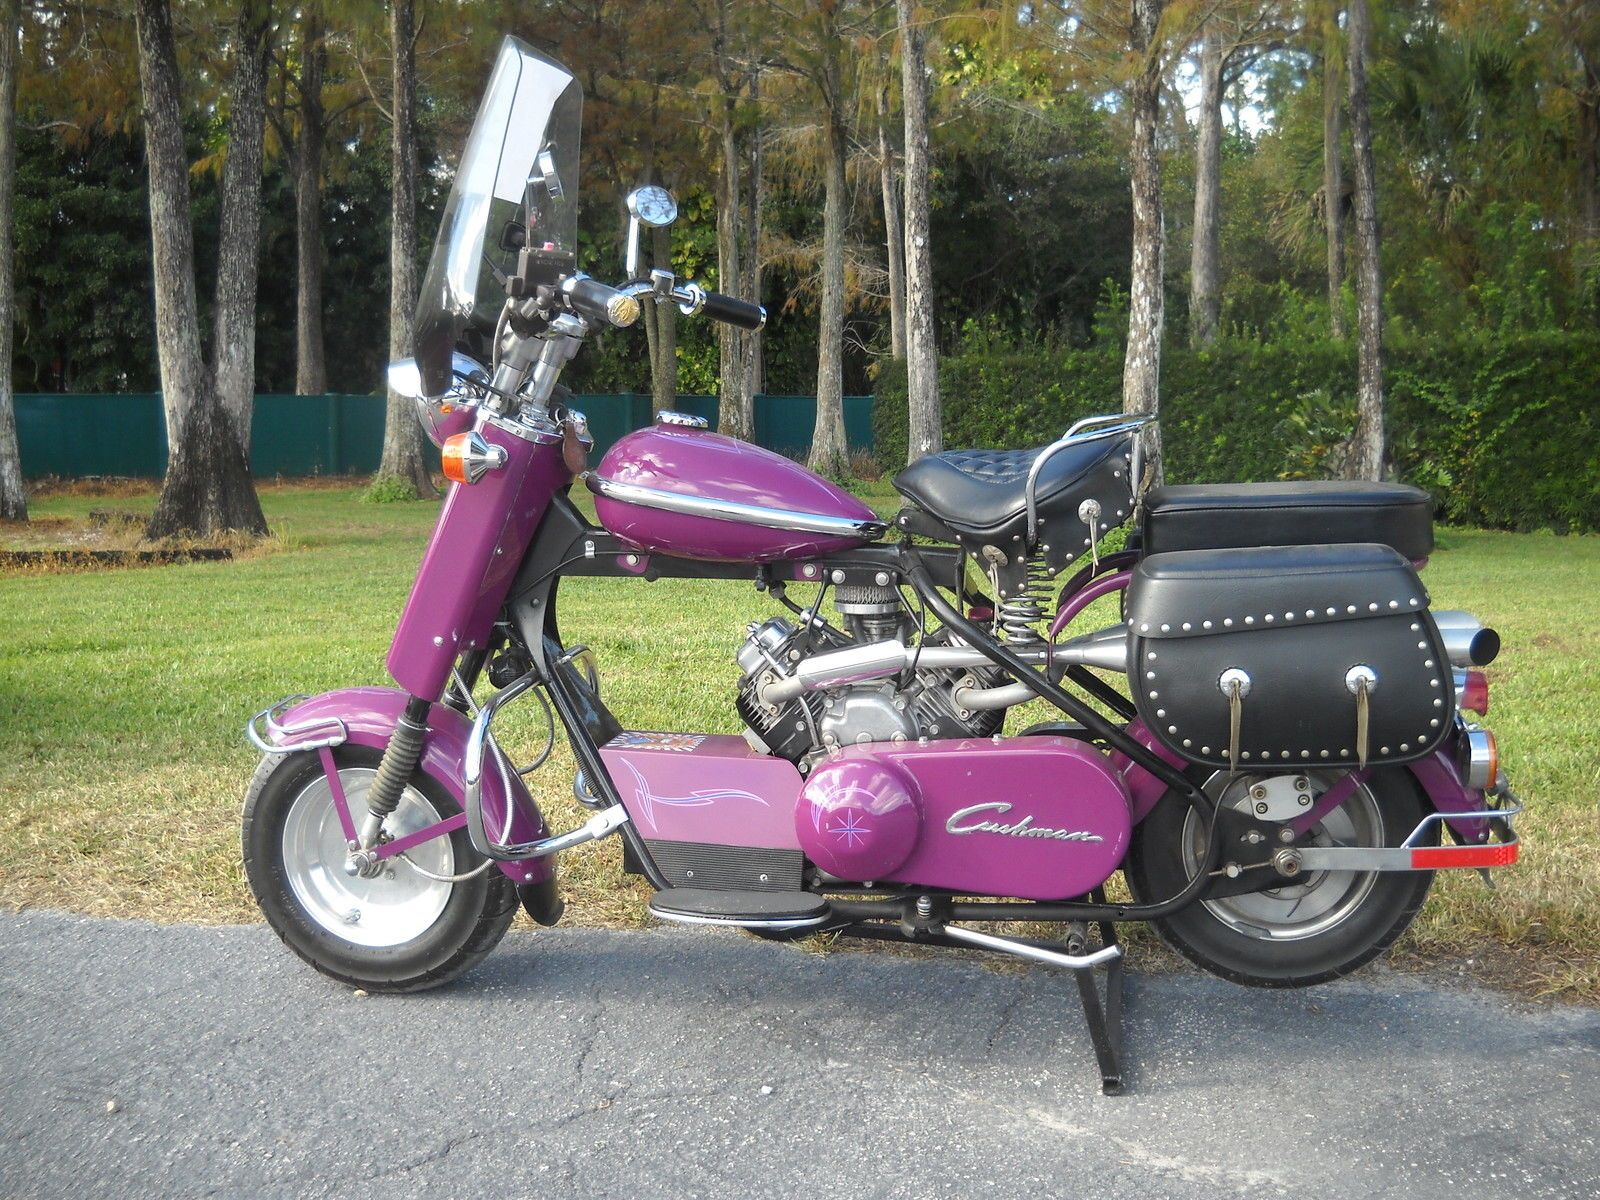 Cushman Motor Scooter Just Scoots Motor Scooters Hot Cars Vehicles